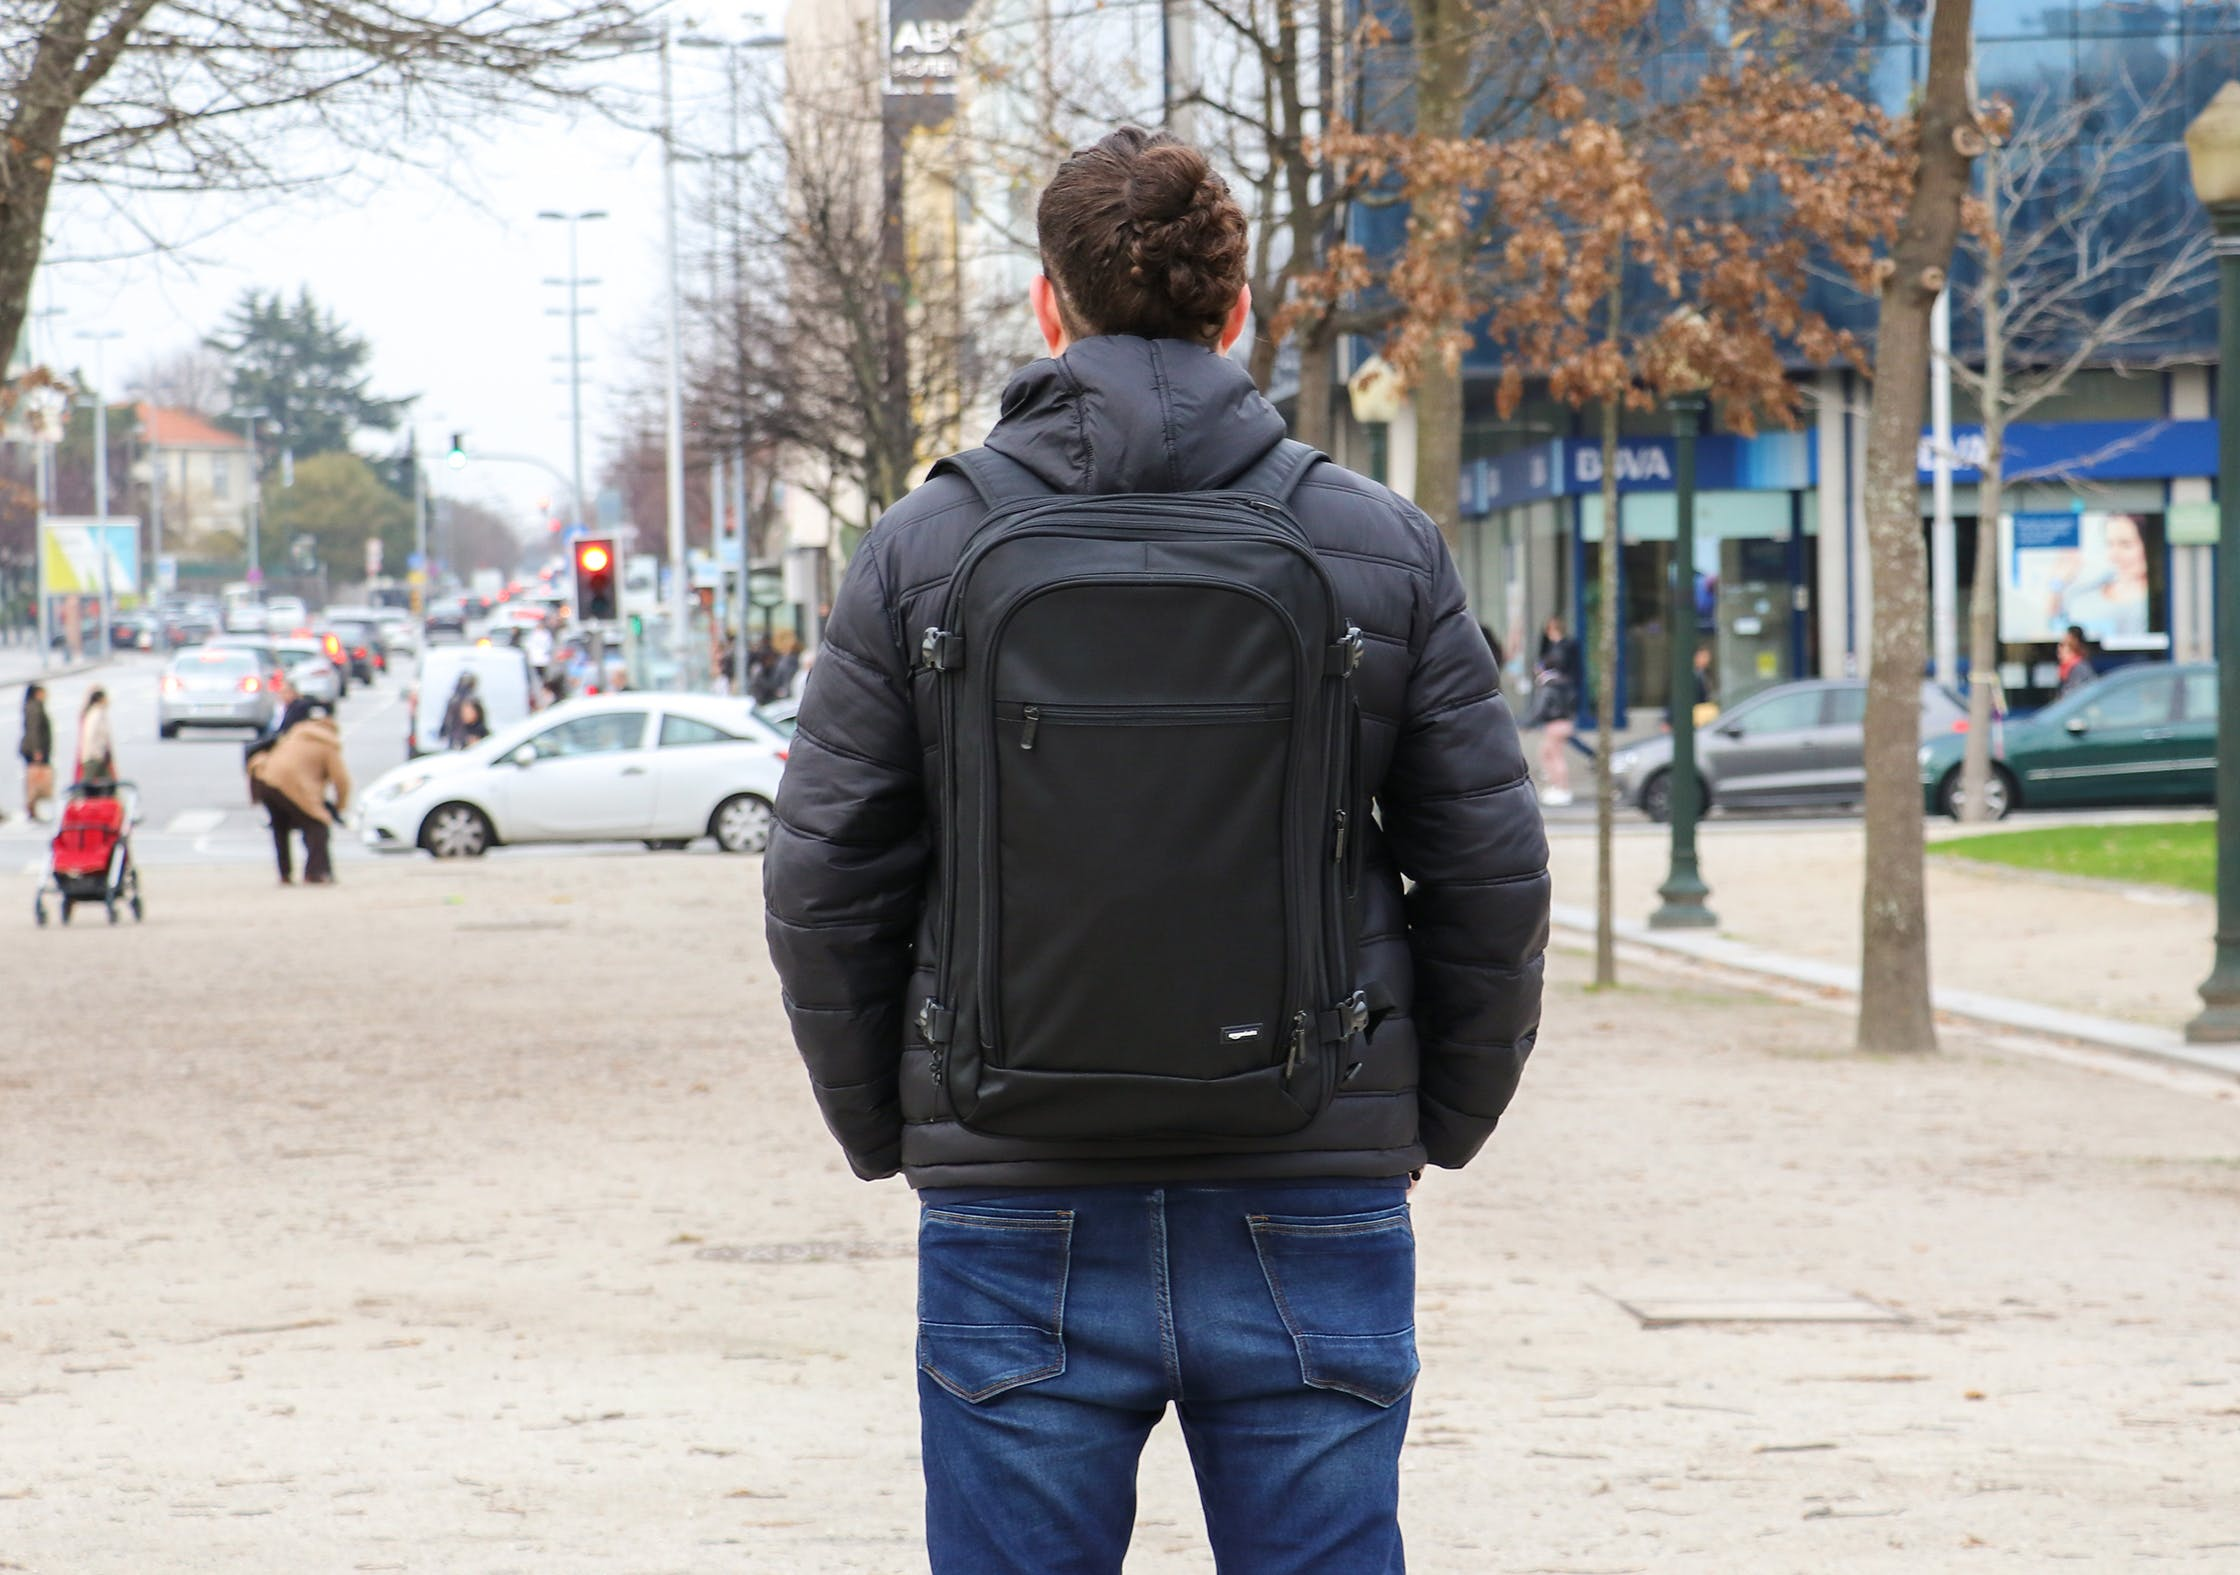 AmazonBasics Carry-On Travel Backpack In Porto, Portugal